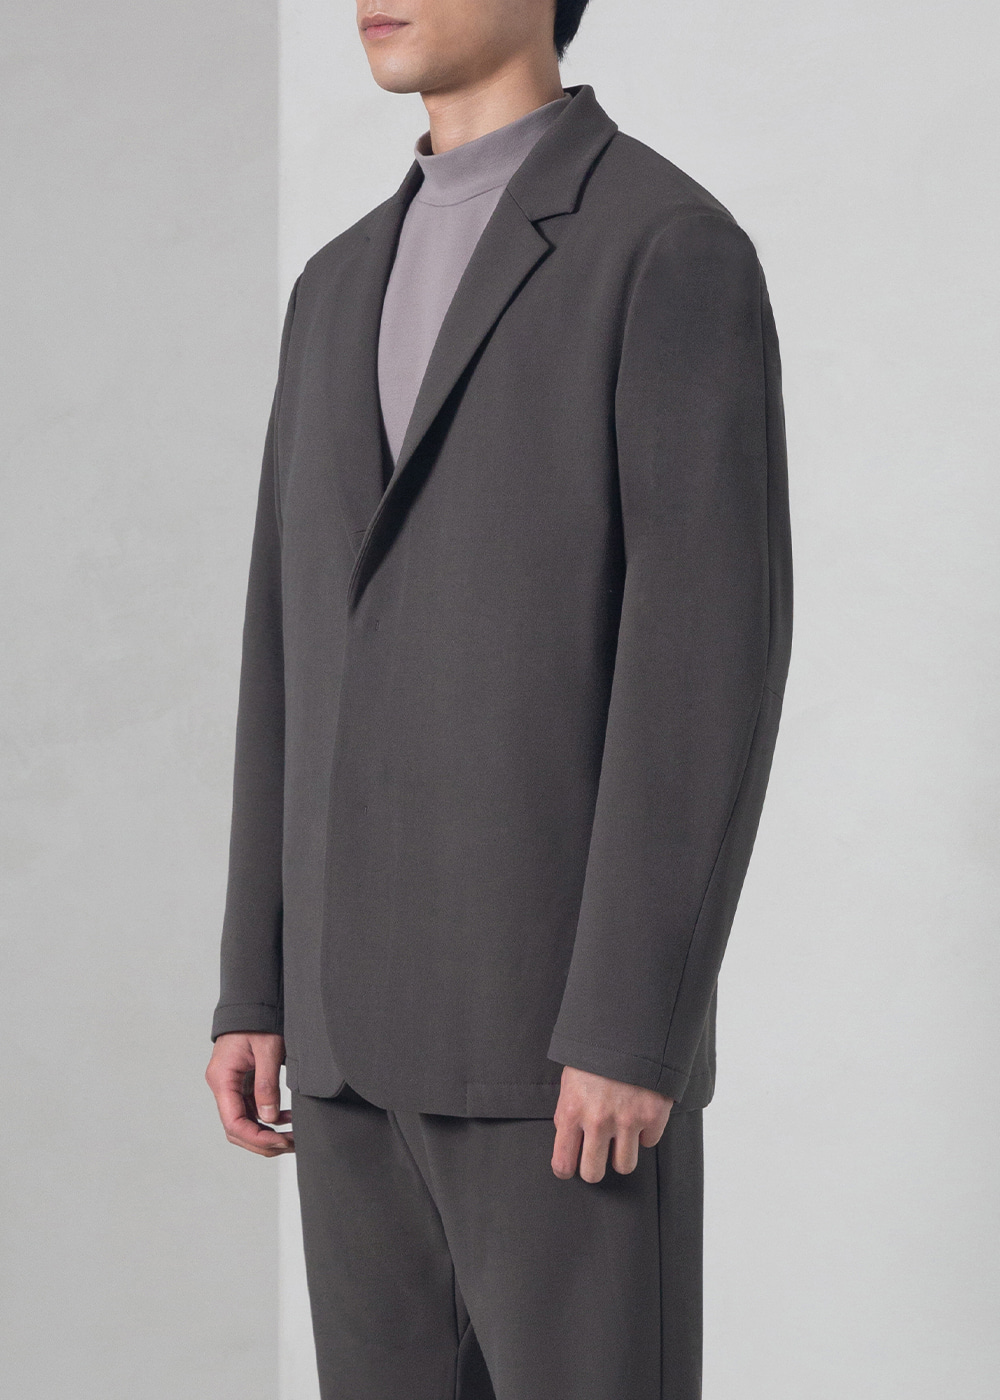 TECHNICAL BLAZER #1.5 ASH